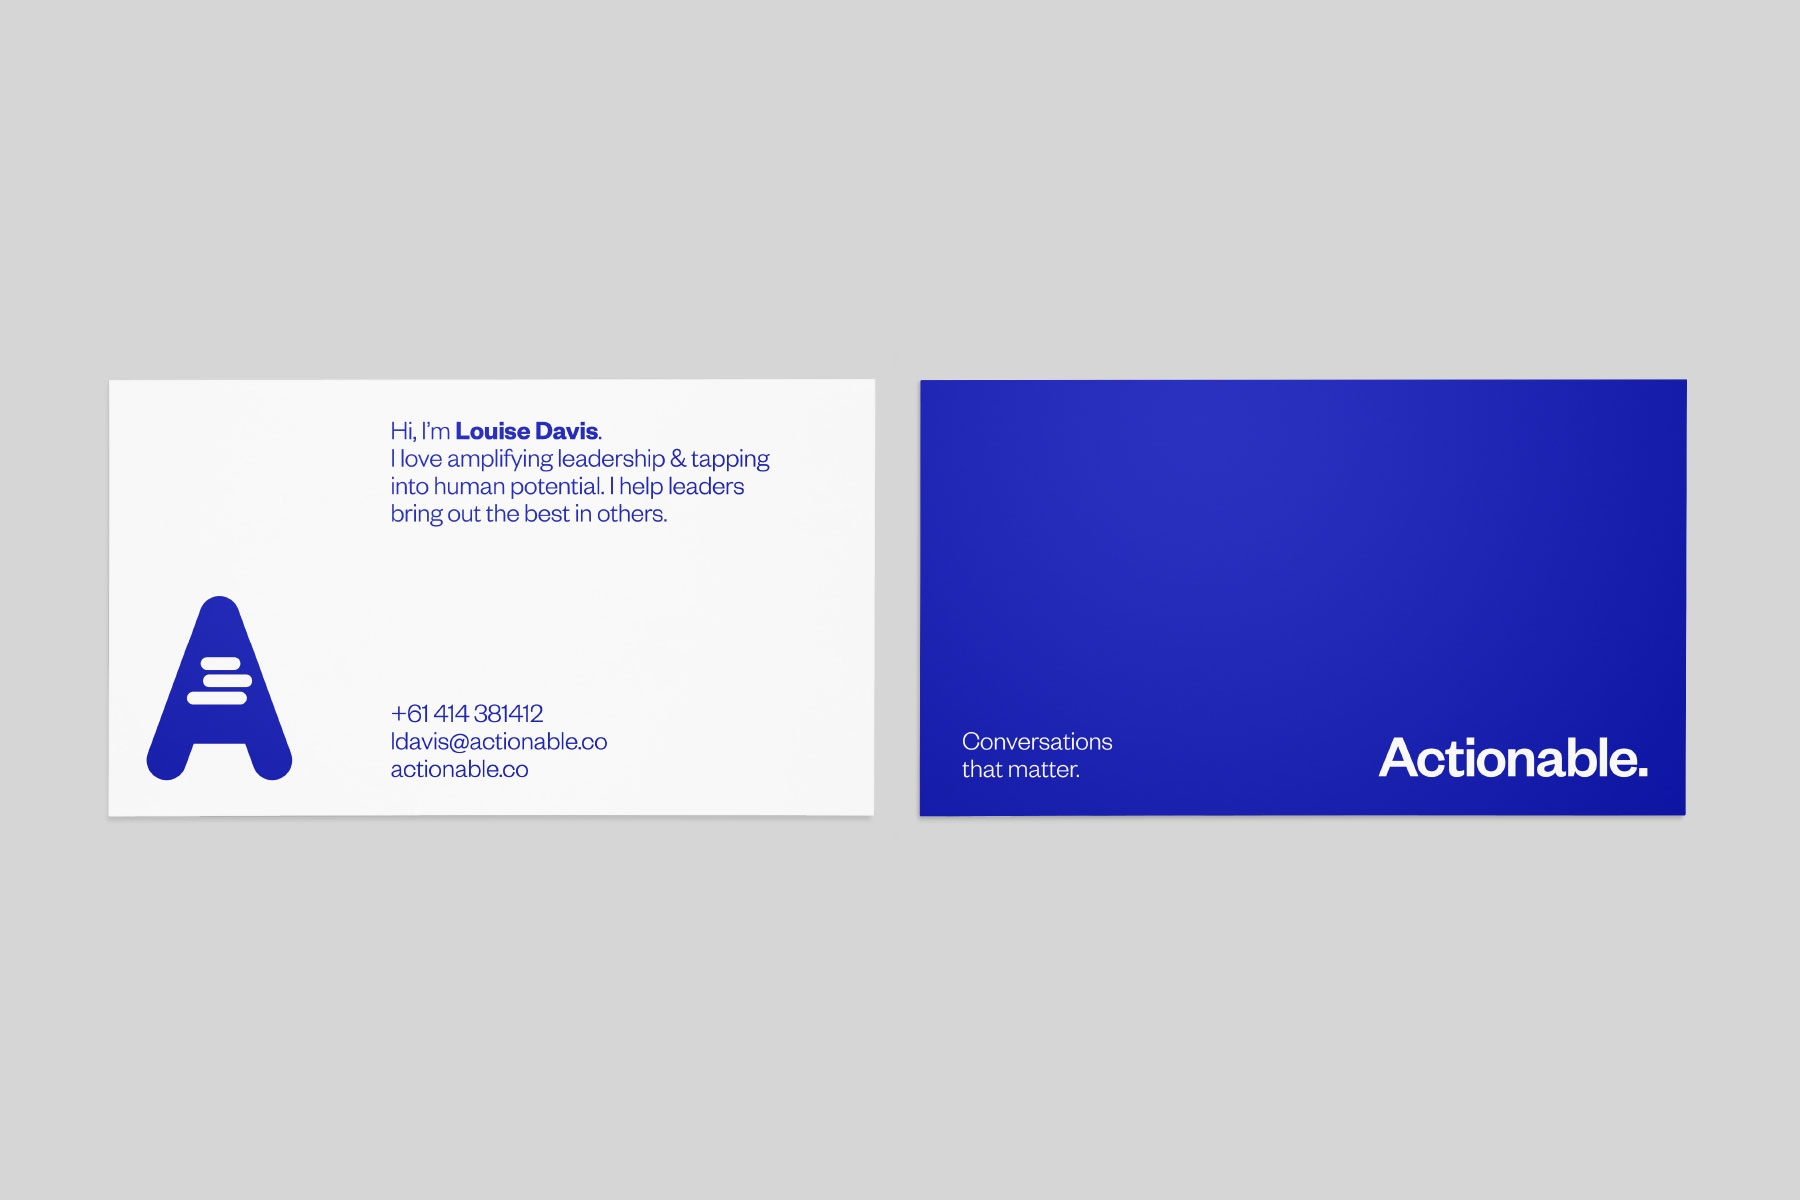 Actionable-8a.jpg